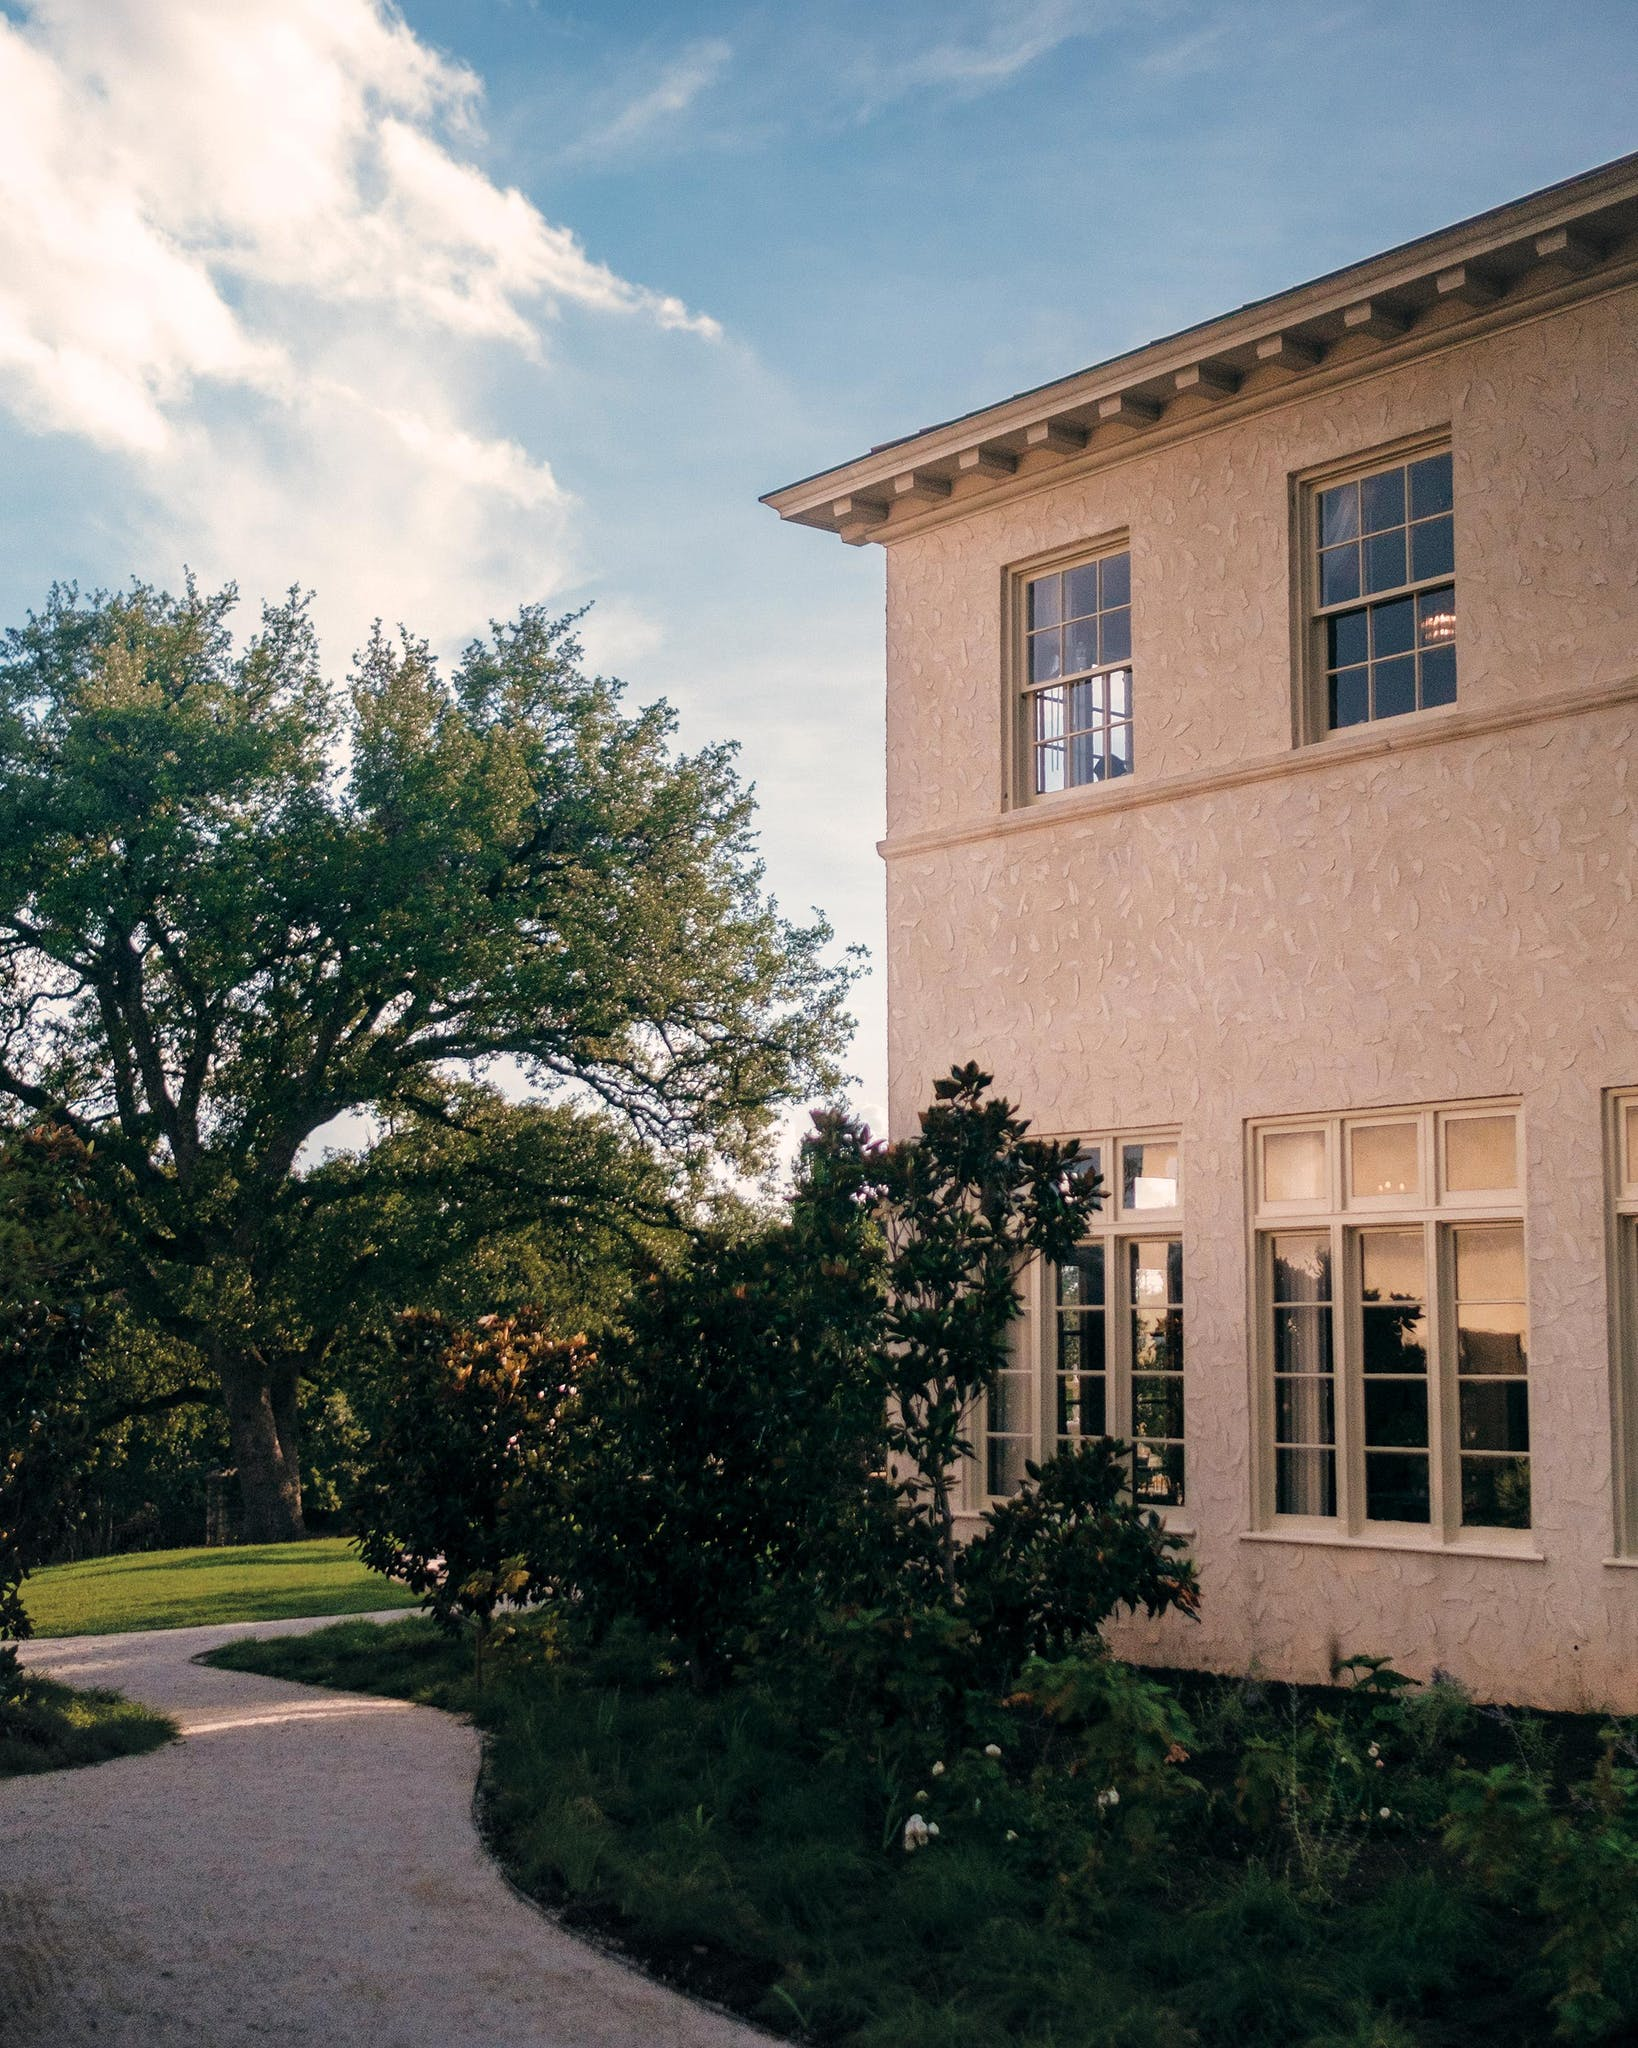 With a hard-to-imagine ten acres, the property is both quaint (like a Hill Country escape) and sprawling.